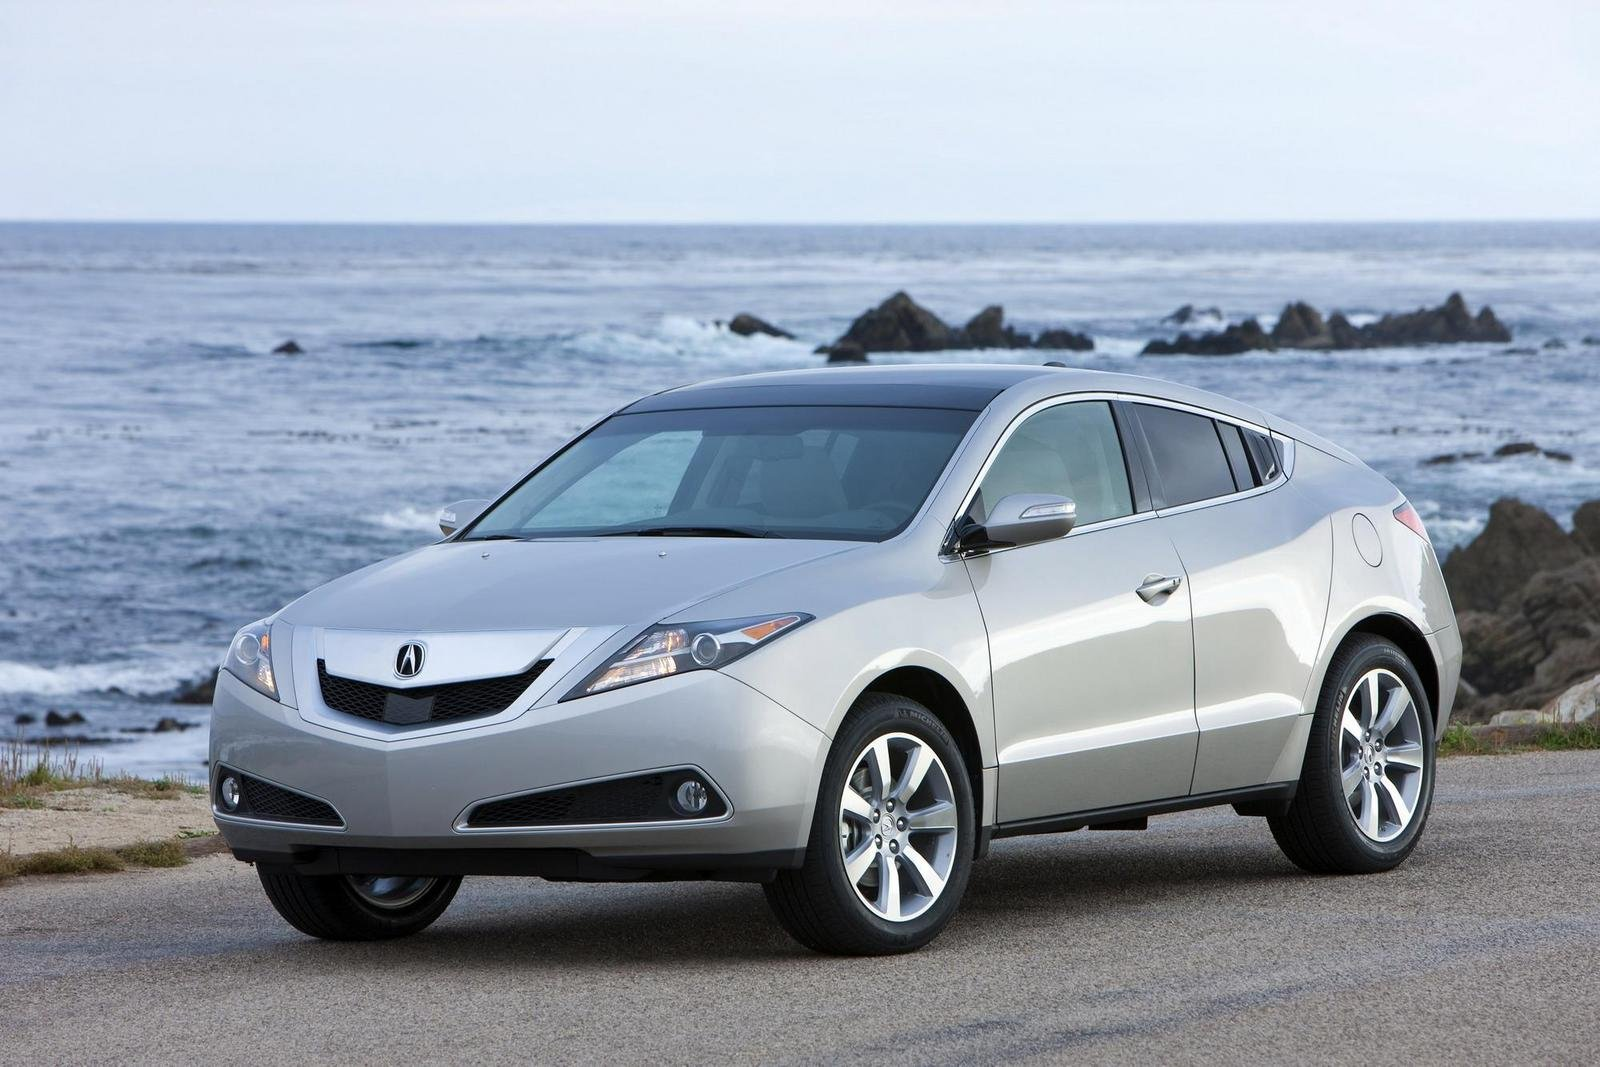 2010 acura zdx picture 327831 car review top speed. Black Bedroom Furniture Sets. Home Design Ideas